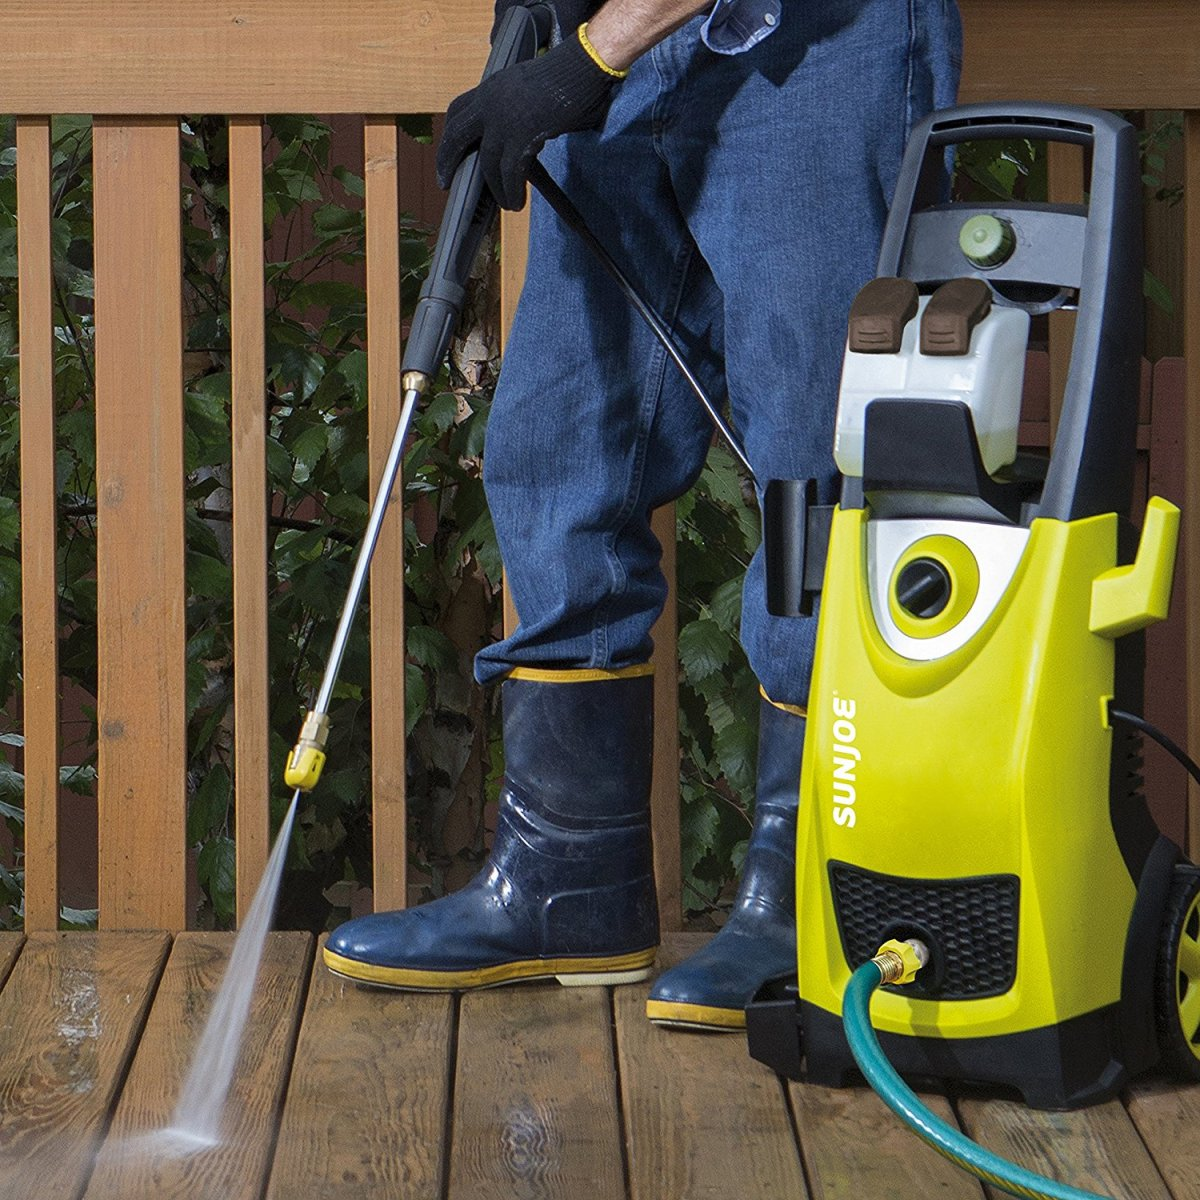 Sun Joe SPX3000 High Pressure Cleaner: Pros and Cons From an Owner